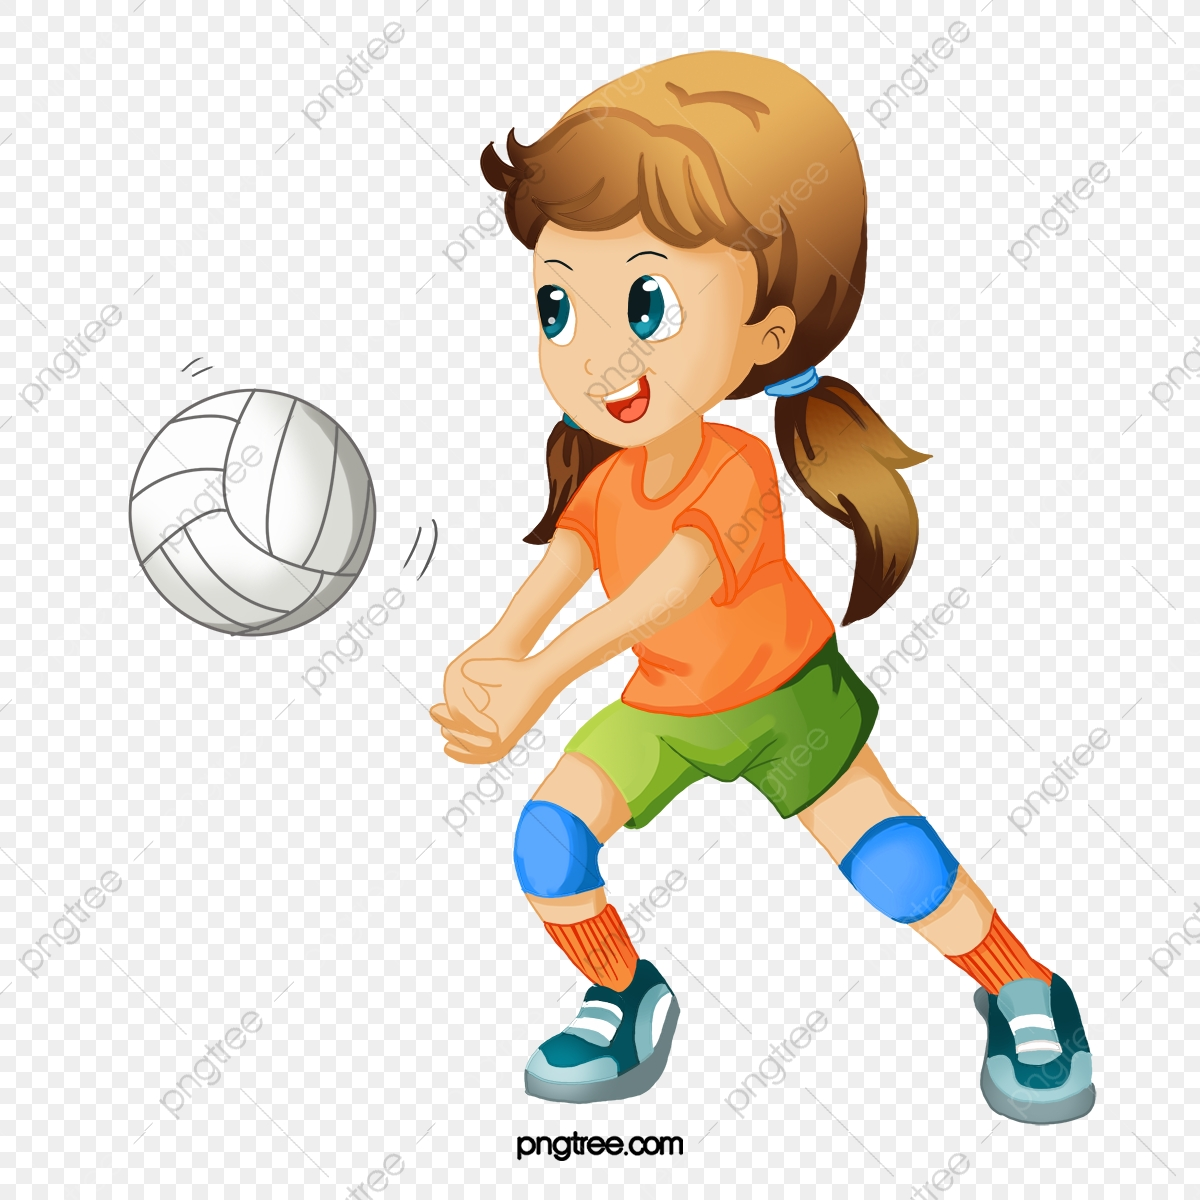 Hand Painted Cartoon Playing Volleyball Players, Cartoon Clipart.